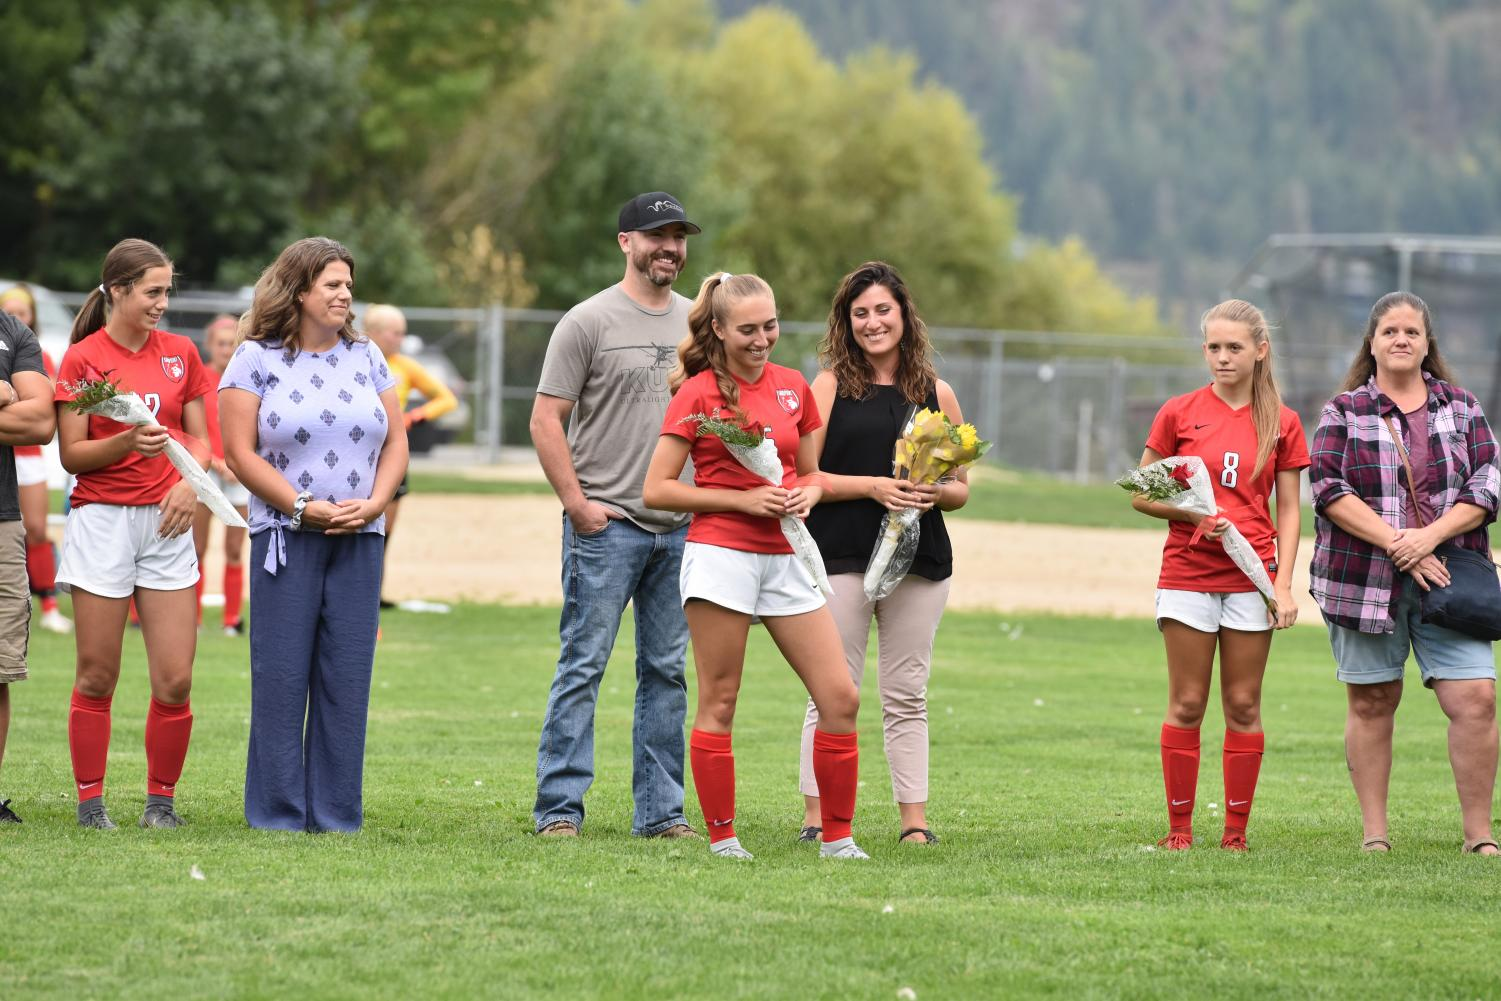 Seniors+Kiley+Webster+%28left%29%2C+Shelby+Mohler+%28middle%29%2C+and+Hannah+Eddy+%28right%29+line+up+with+their+parents+to+be+recognized+before+the+game+on+Senior+Night.+